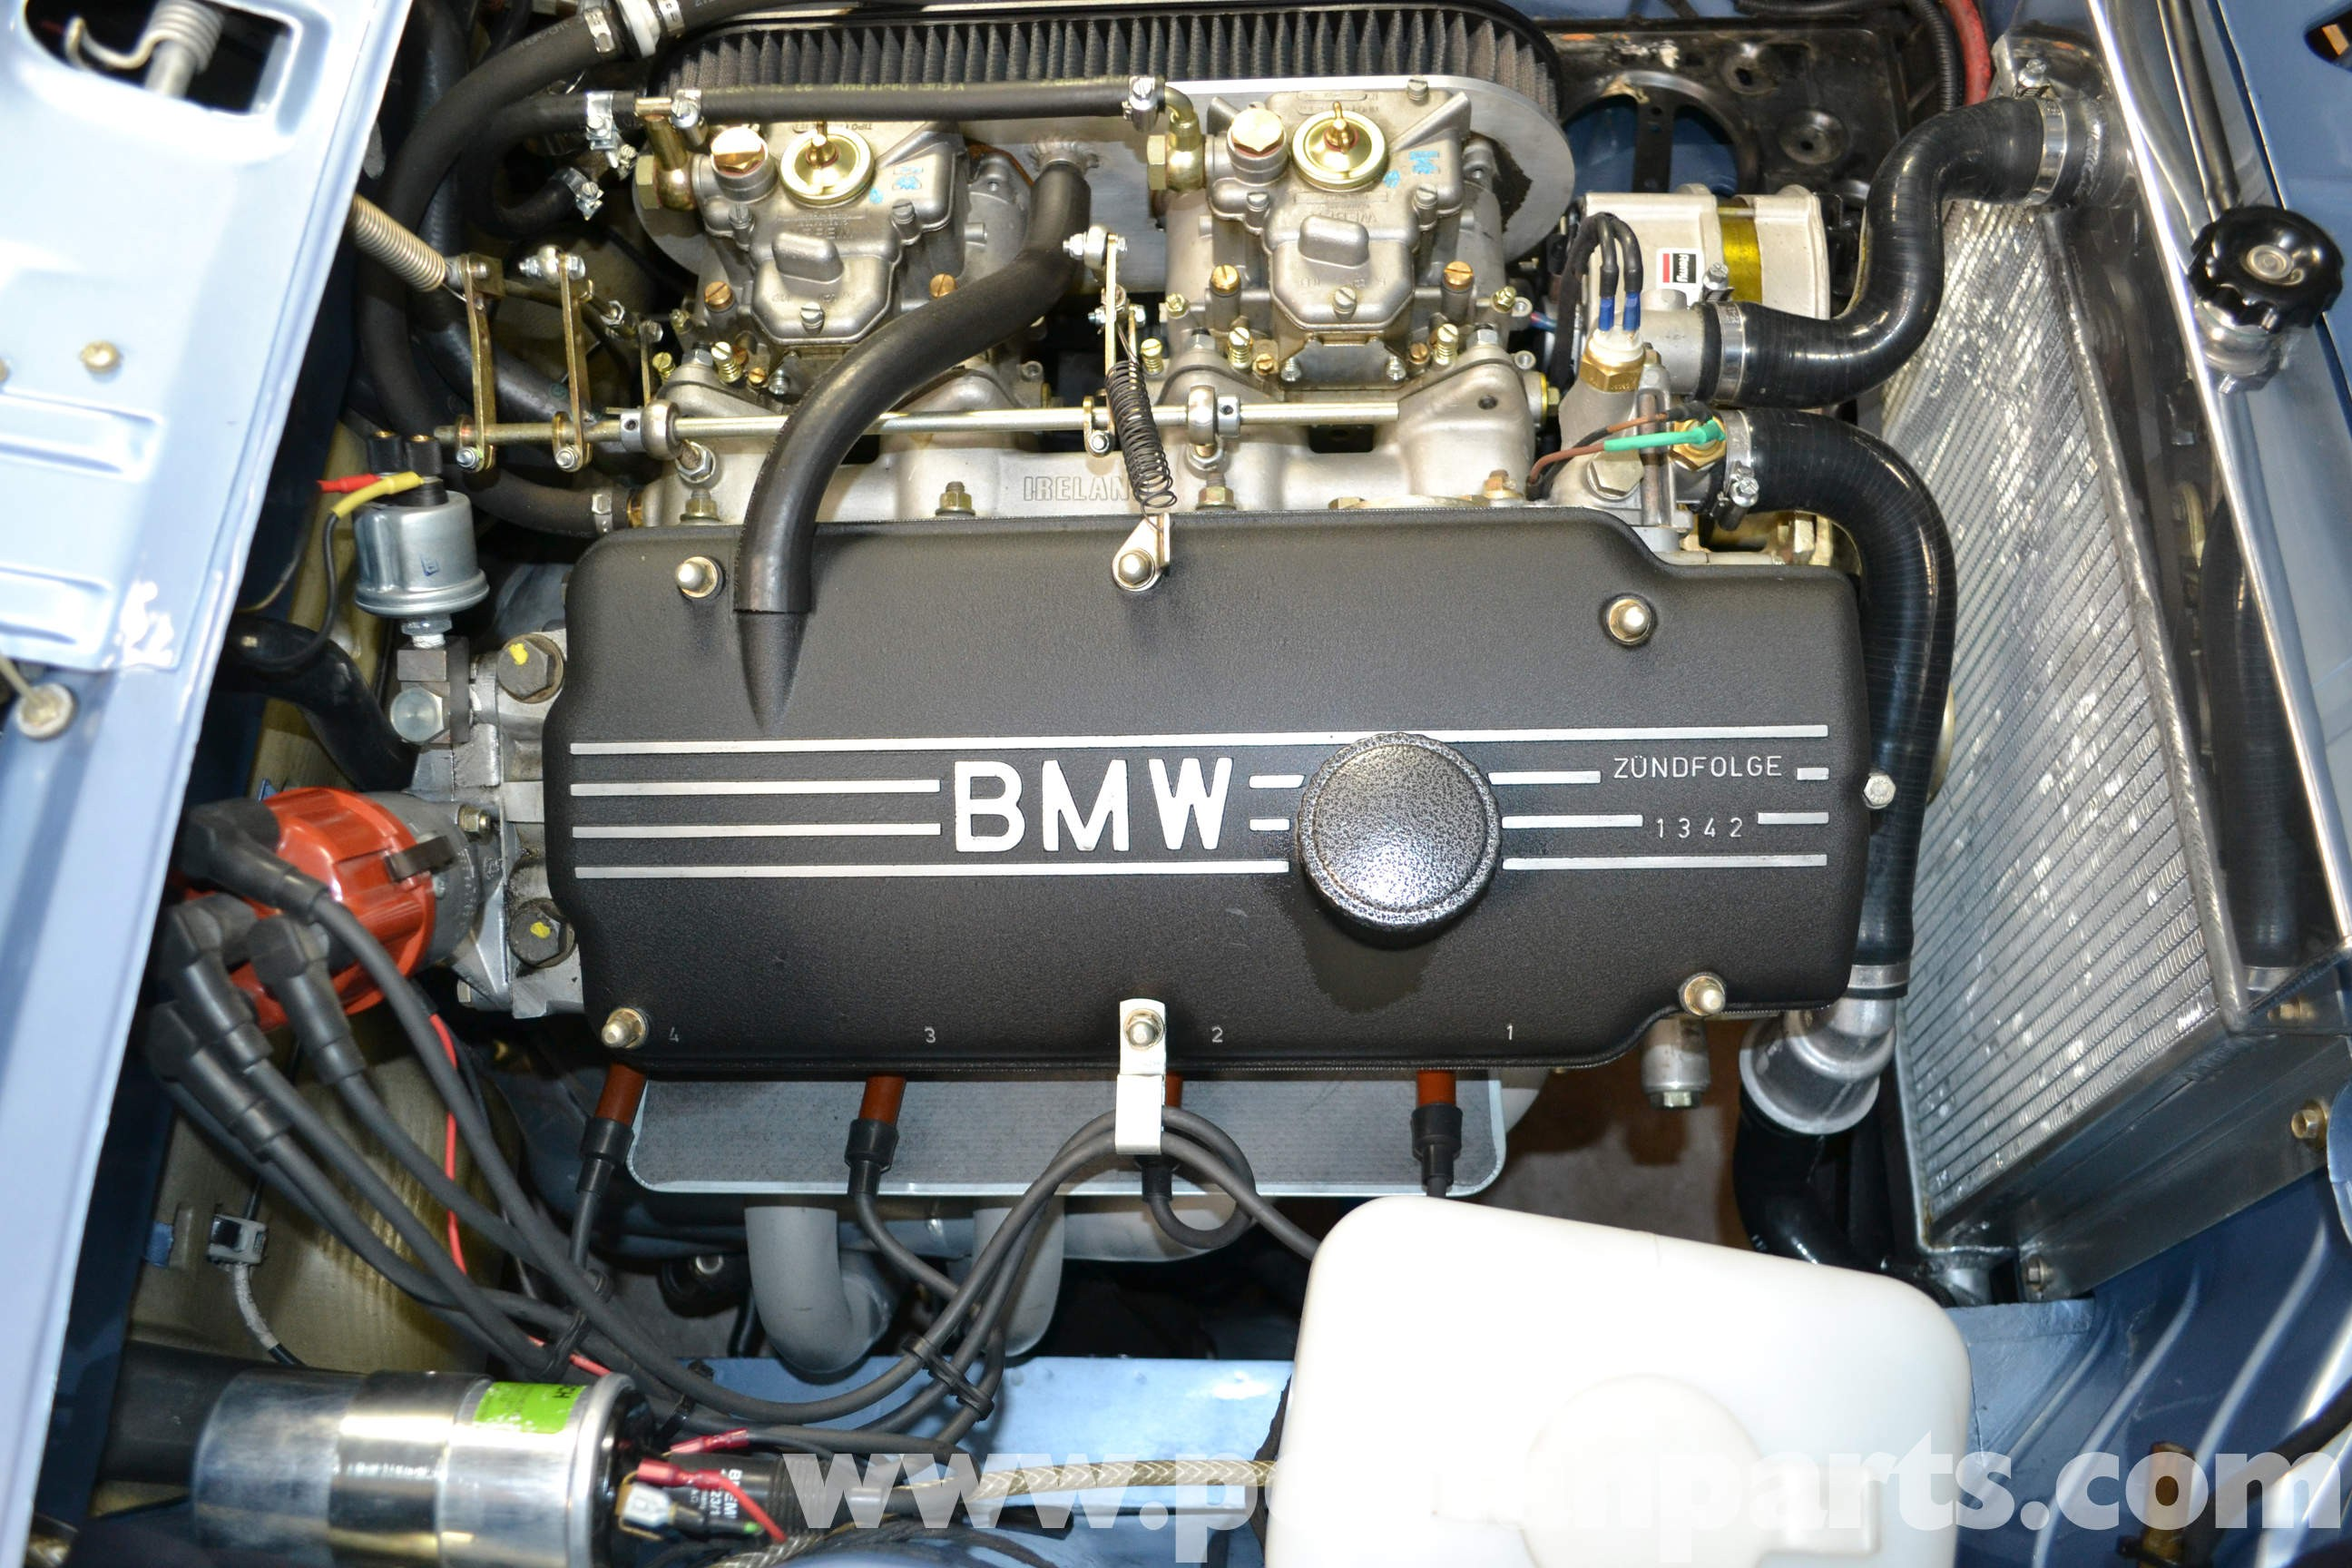 Bmw M10 Engine Diagram Bmw 2002 Valve Cover Gasket Removal 1966 1976 Of Bmw M10 Engine Diagram